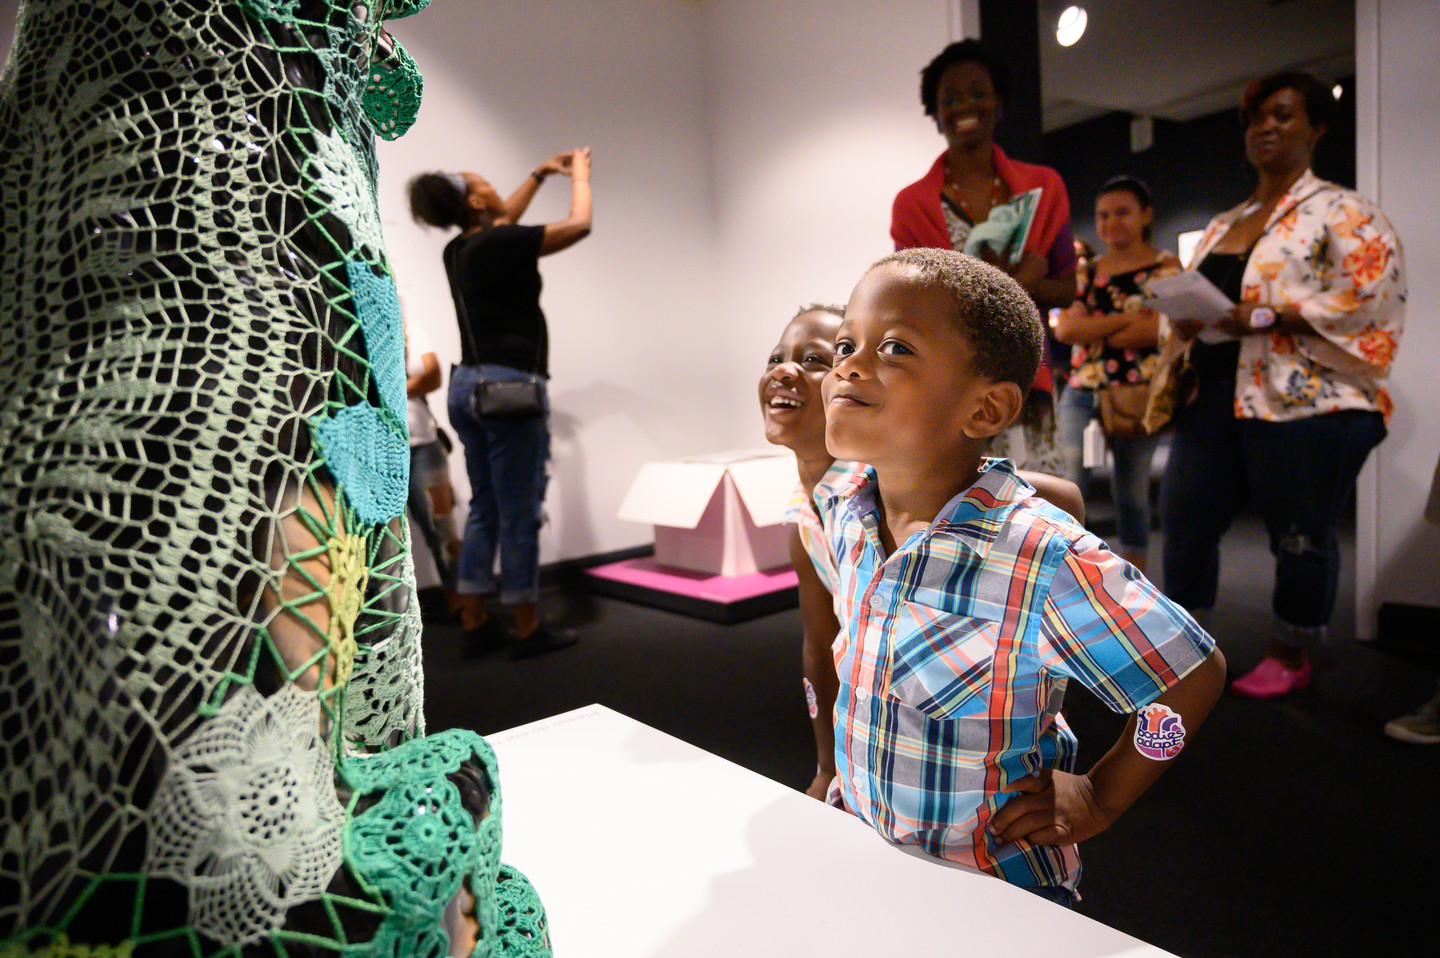 Two young children with medium skin tone stand in front of a dog sculpture covered with green crochet panels. One child stands with hands on hips, eyes turned to look directly at the viewer, and gives a slight smirk. Adult visitors in the background look at the scene with amusement.